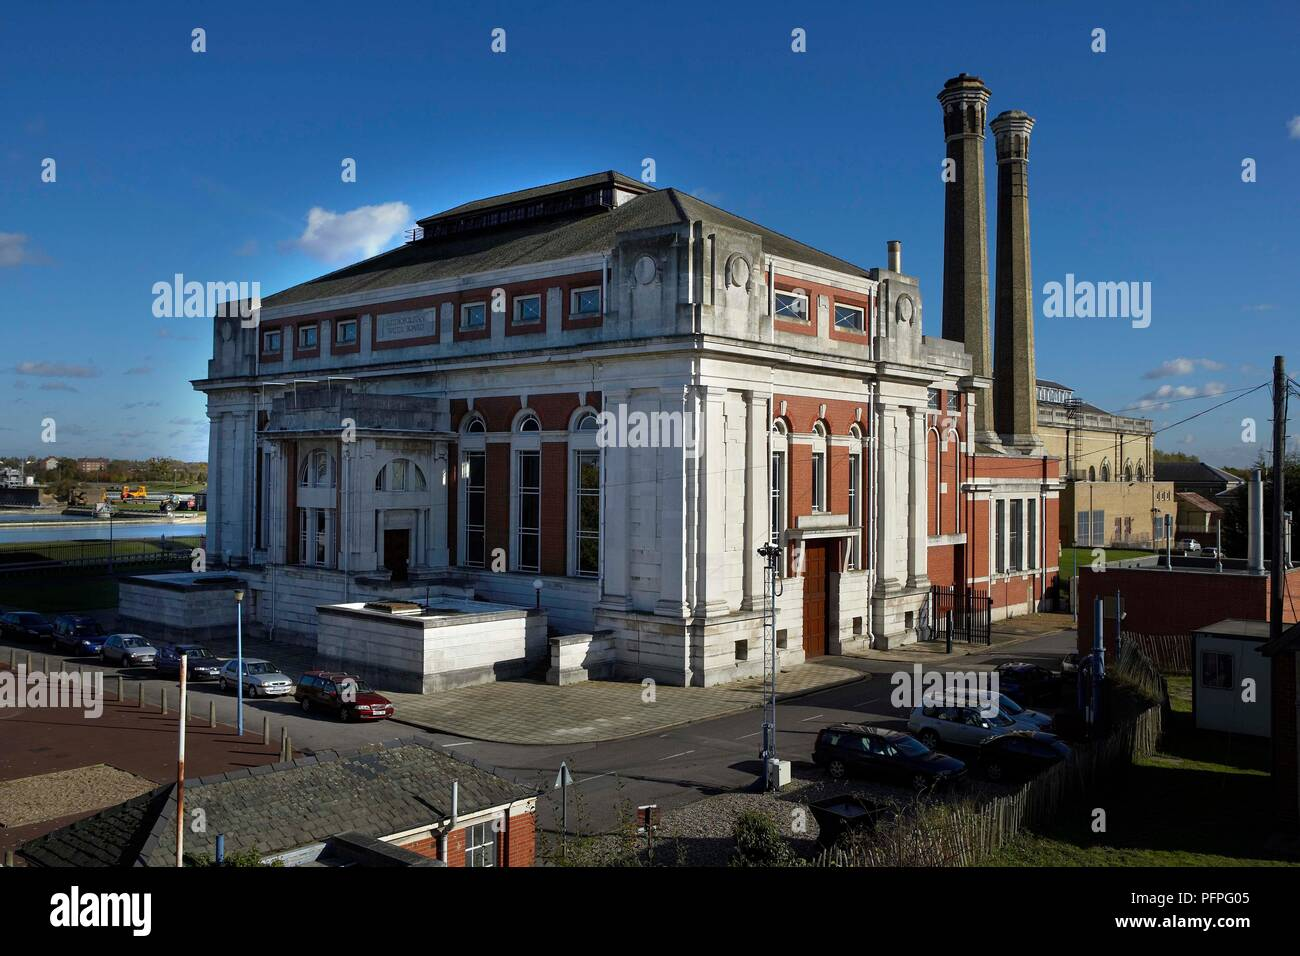 Great Britain, England, Middlesex, Kempton Park Pumping Station, historic pump house set against blue sky Stock Photo